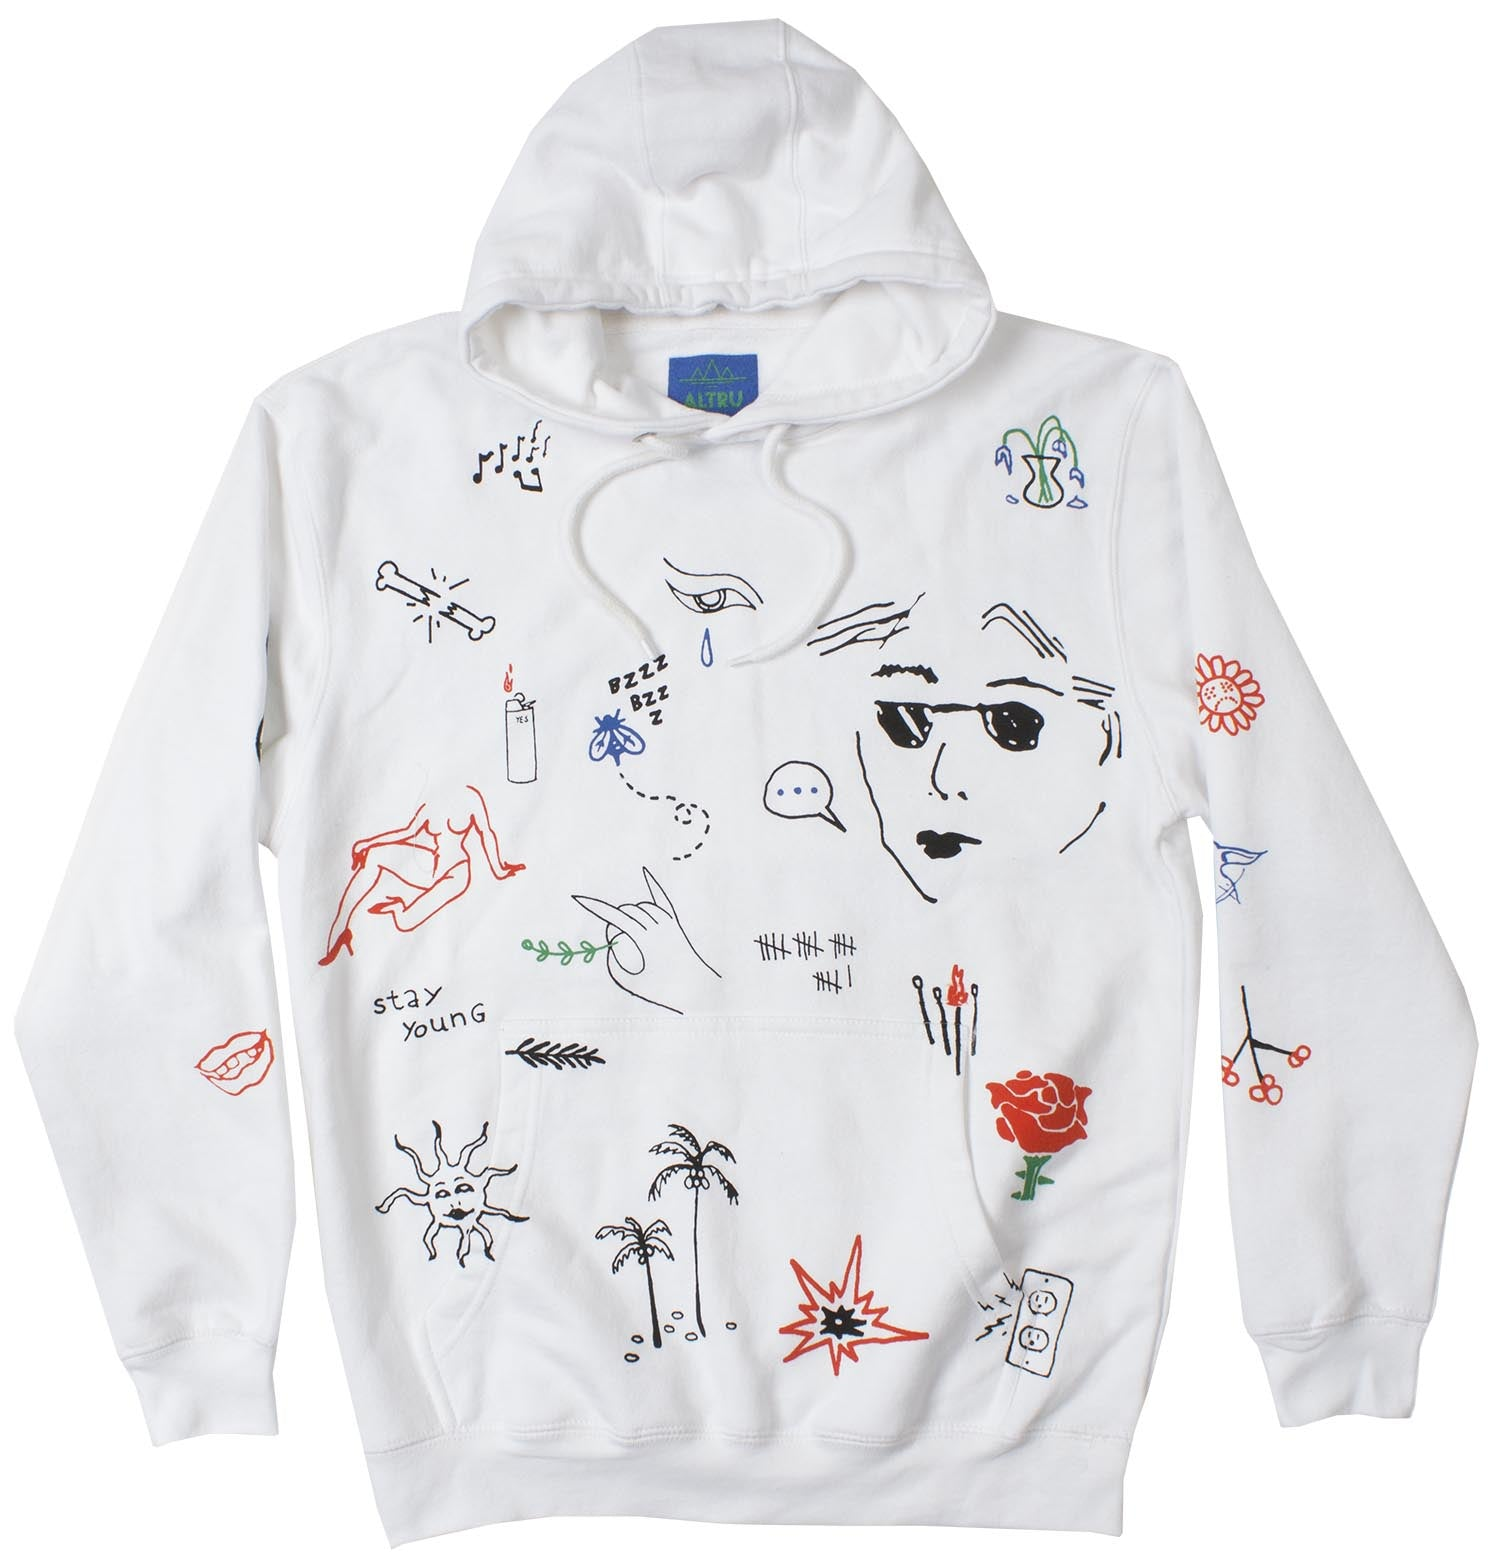 Altru Apparel Stick N Poke Art Graphic Hoodie